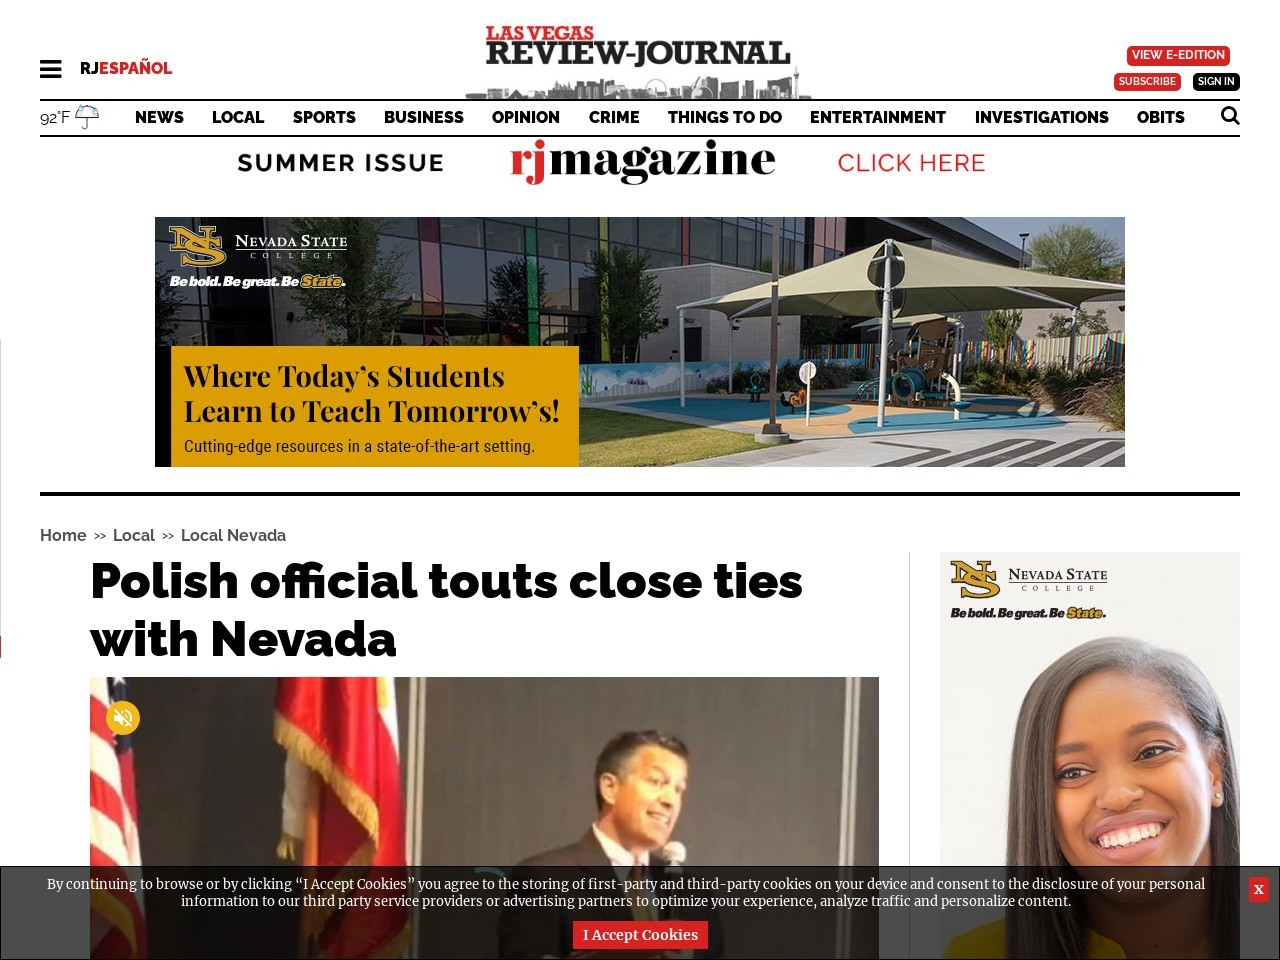 Polish official touts close ties with Nevada